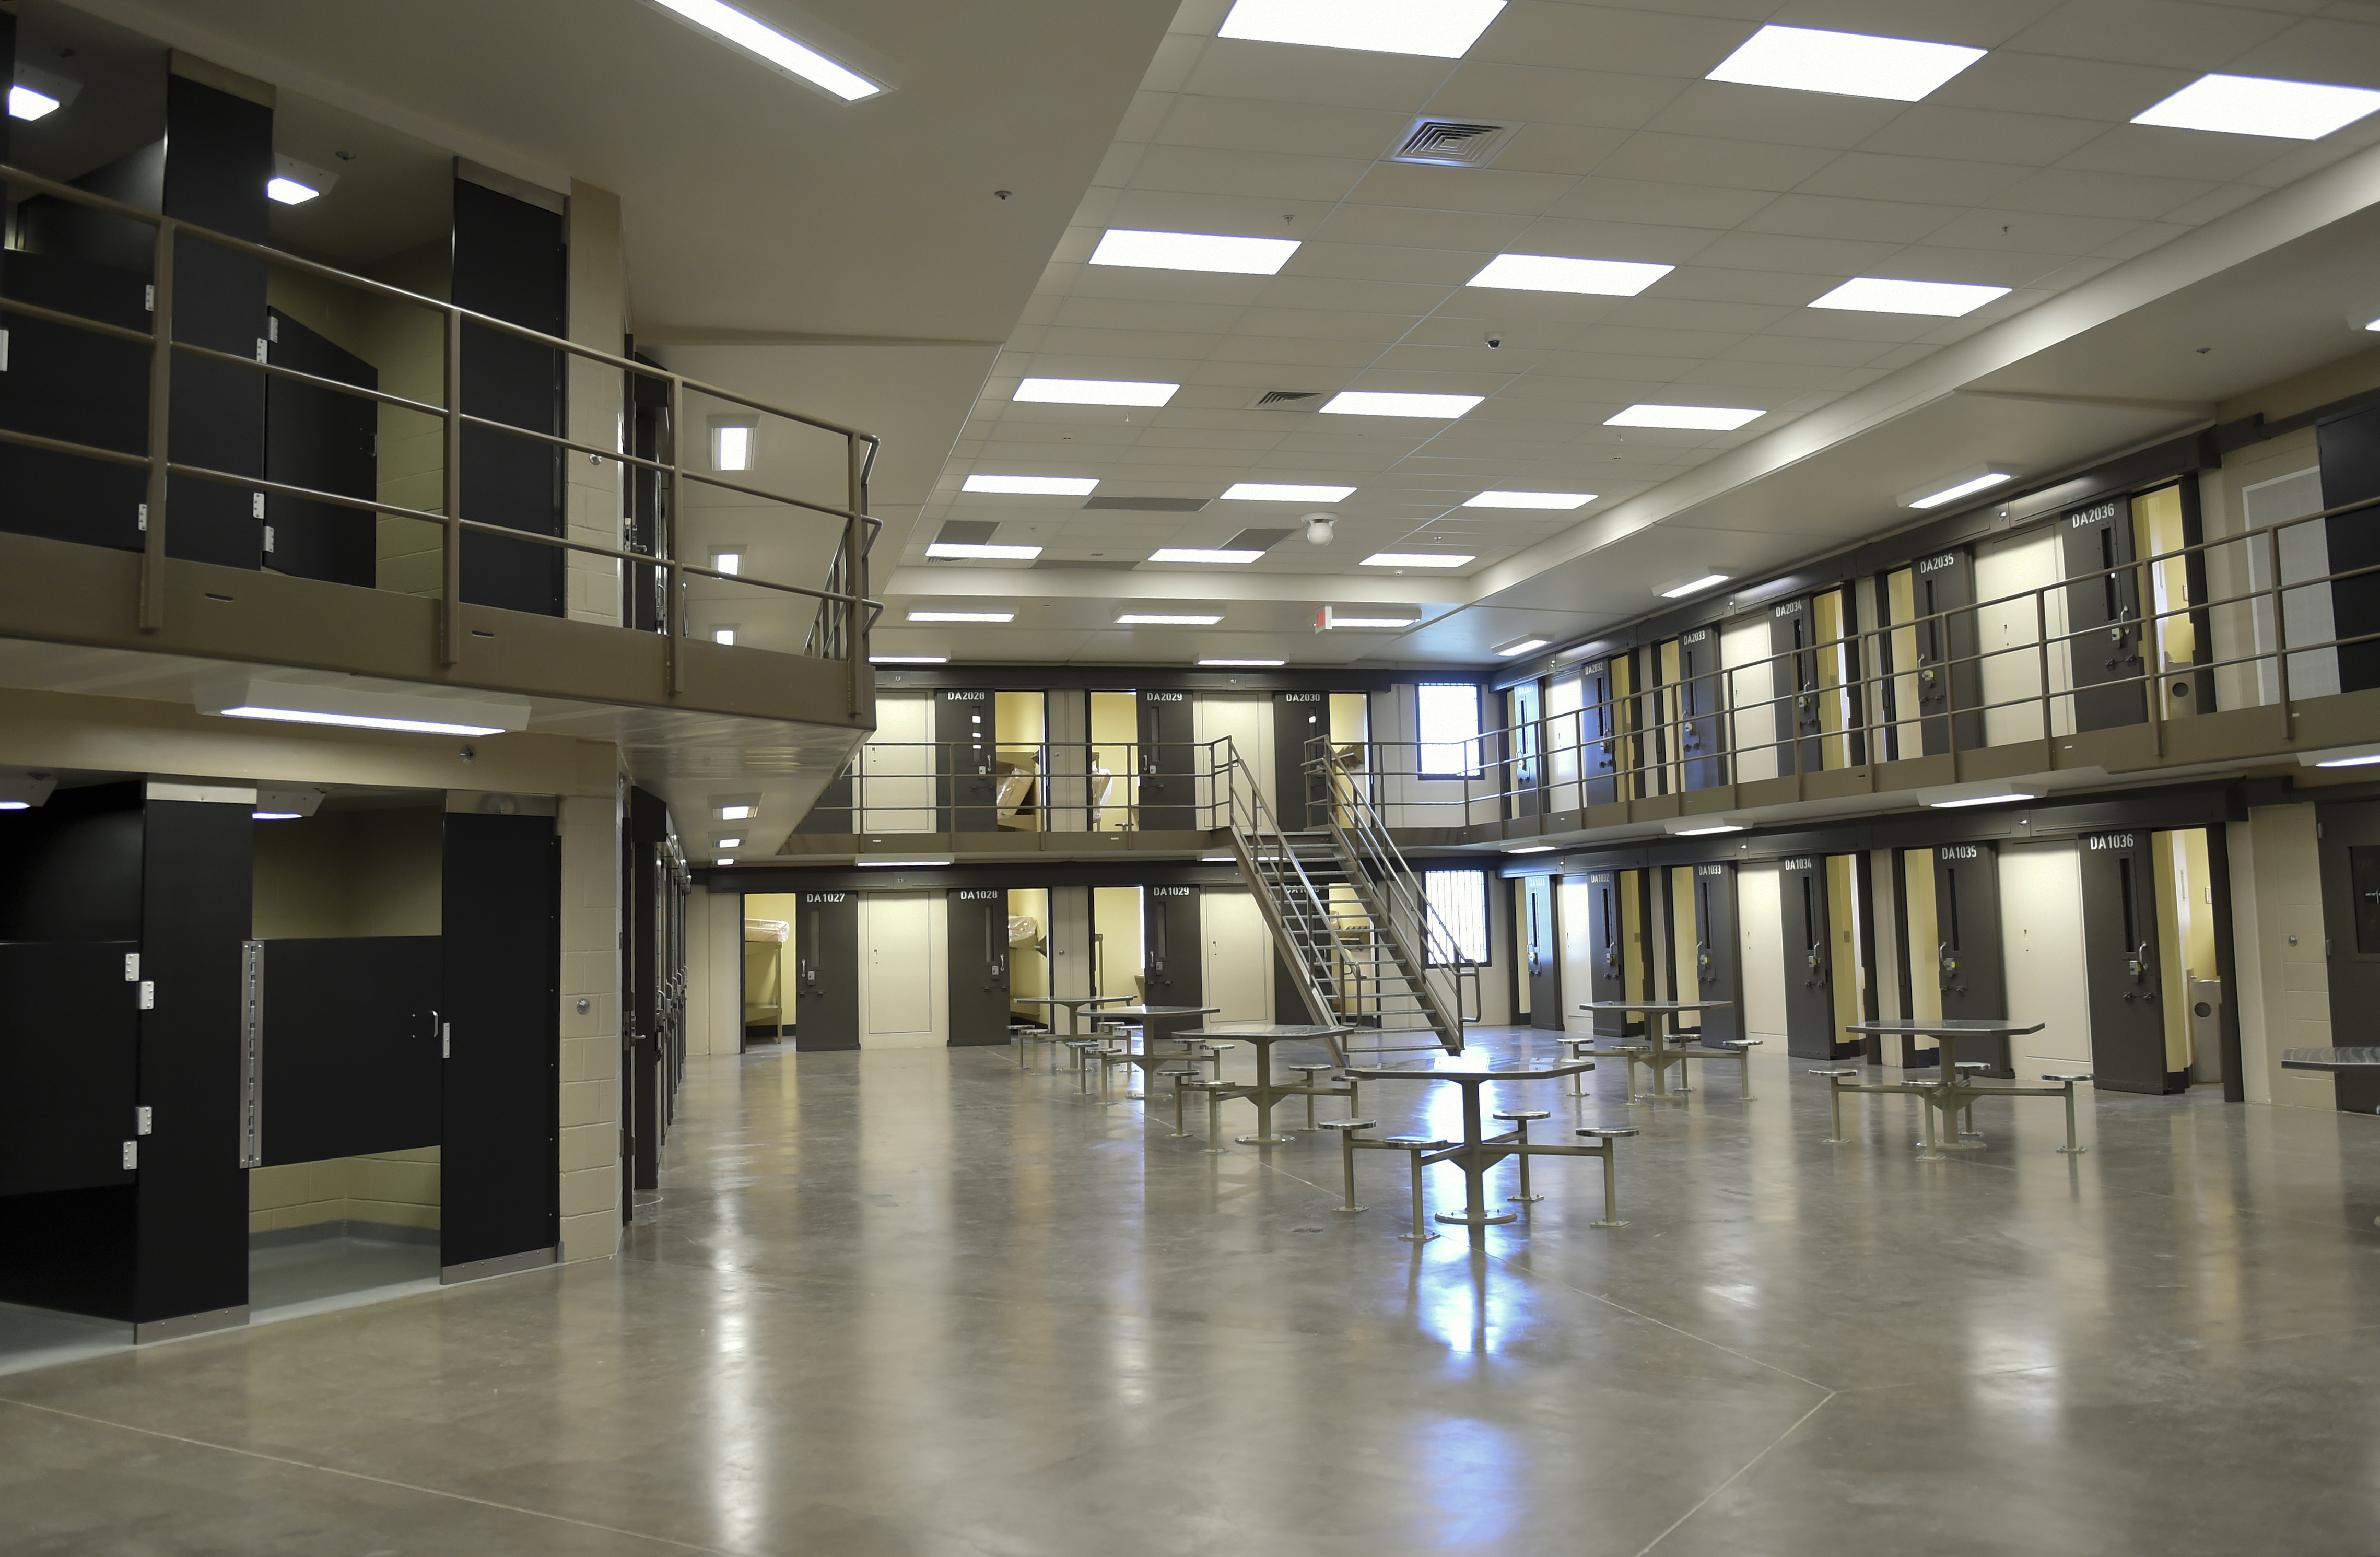 Inside block D at the State Correctional Institution in Phoenixville, Pennsylvania on June 1, 2018.